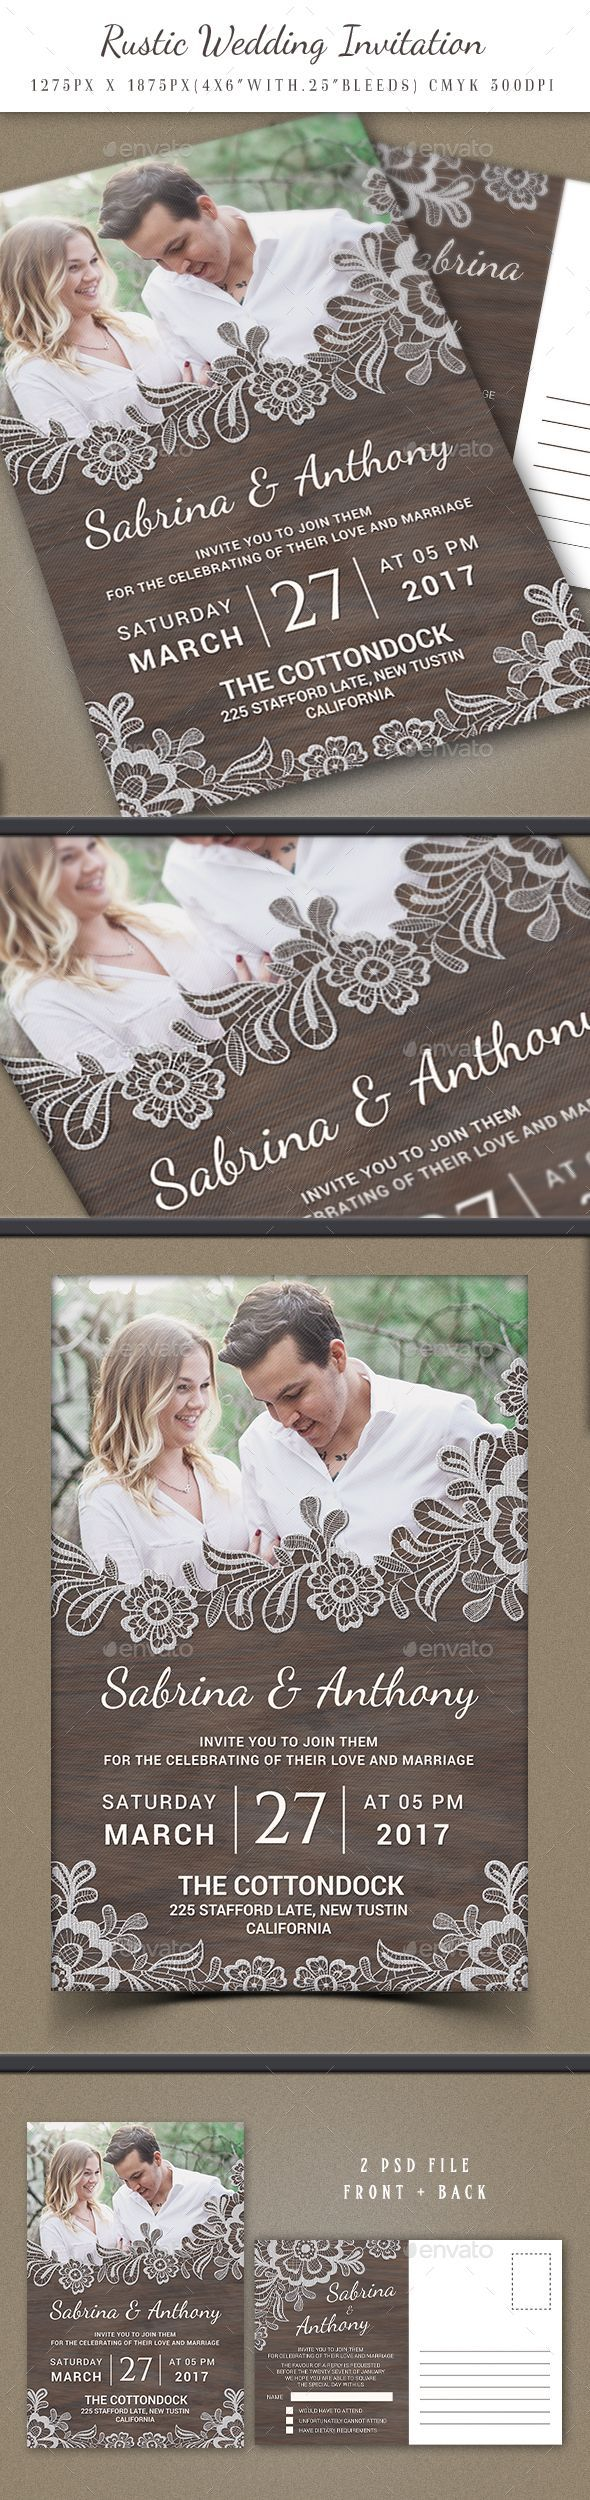 rustic wedding invitations do it yourself%0A Rustic Wedding Invitation by Goodgraph Rustic Wedding InvitationThe PSD  file is setup at     px x     px